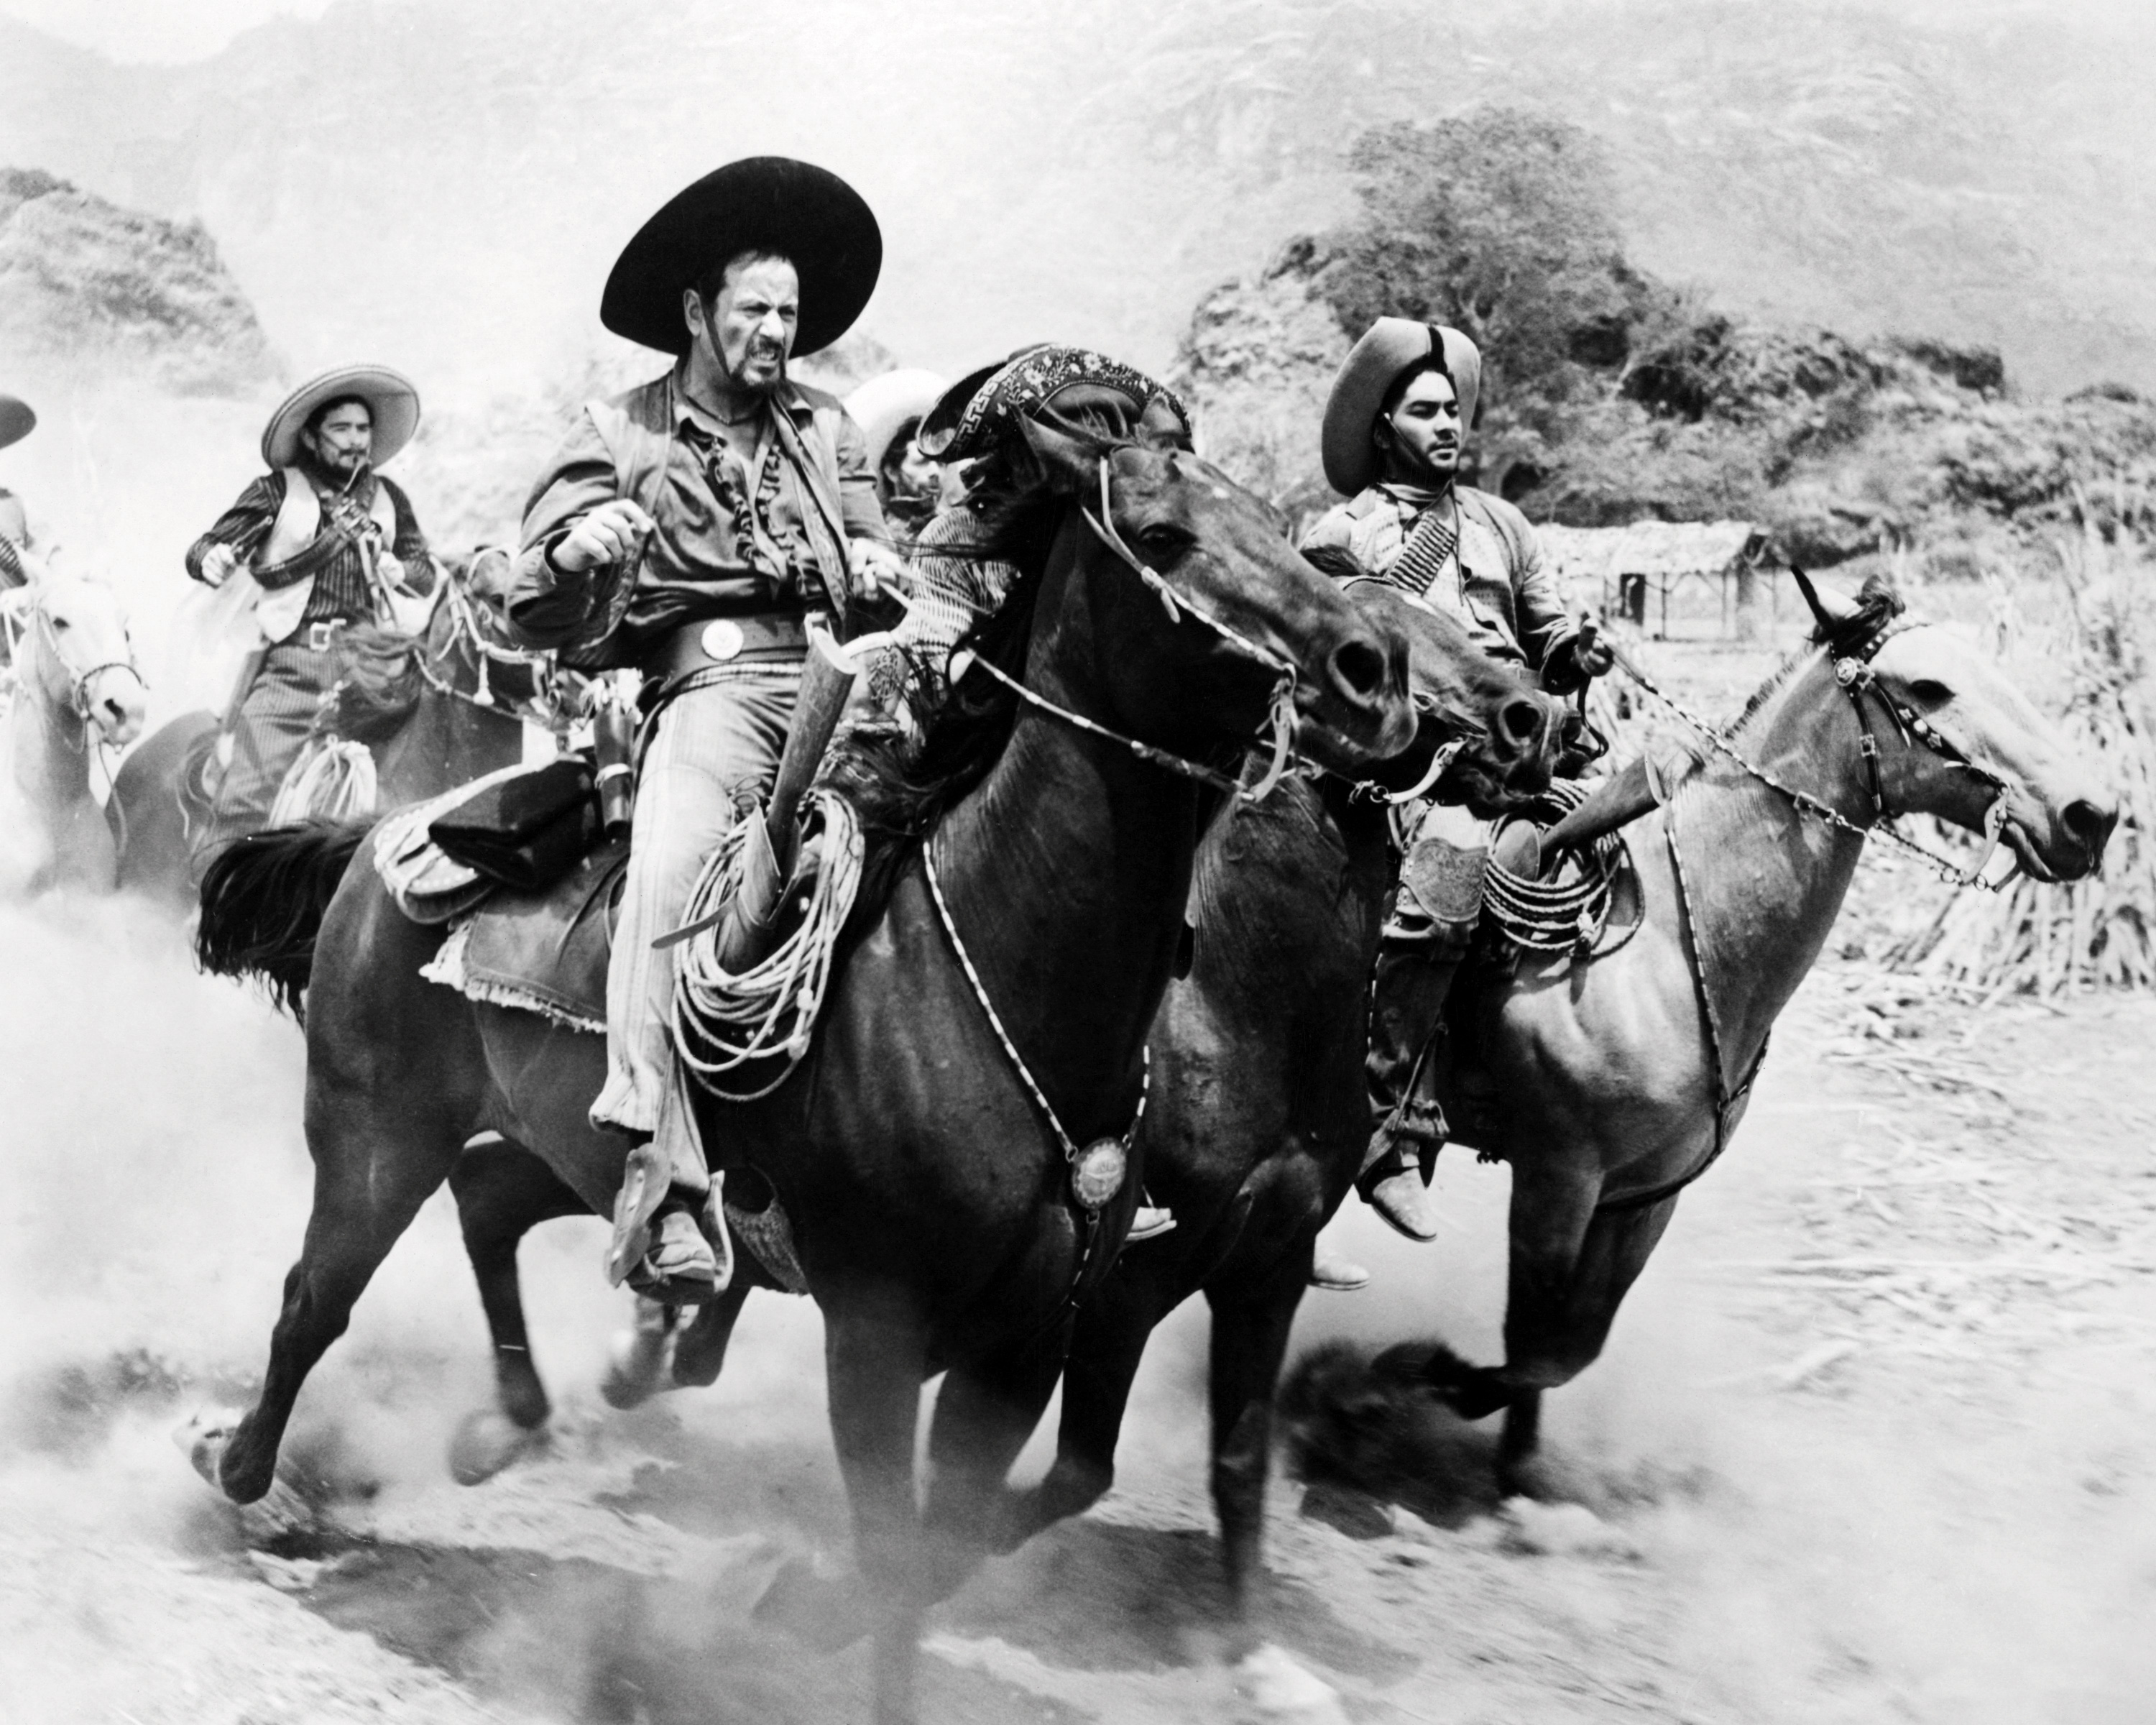 American actor Eli Wallach (foreground, left), as the bandit leader, Calvera, in 'The Magnificent Seven', directed by John Sturges, 1960. (Photo by Silver Screen Collection/Getty Images)